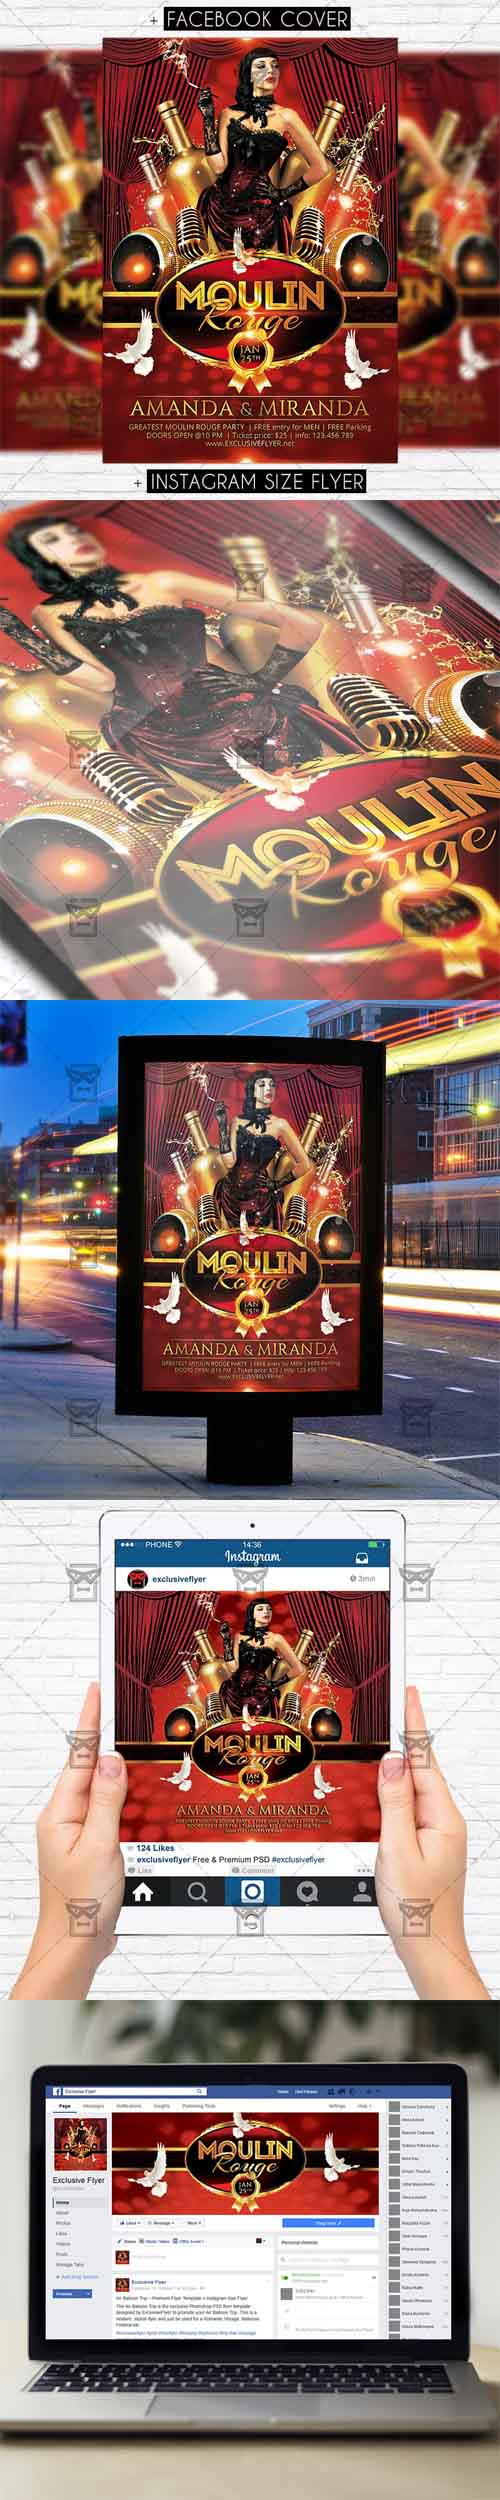 Flyer Template - Moulin Rouge